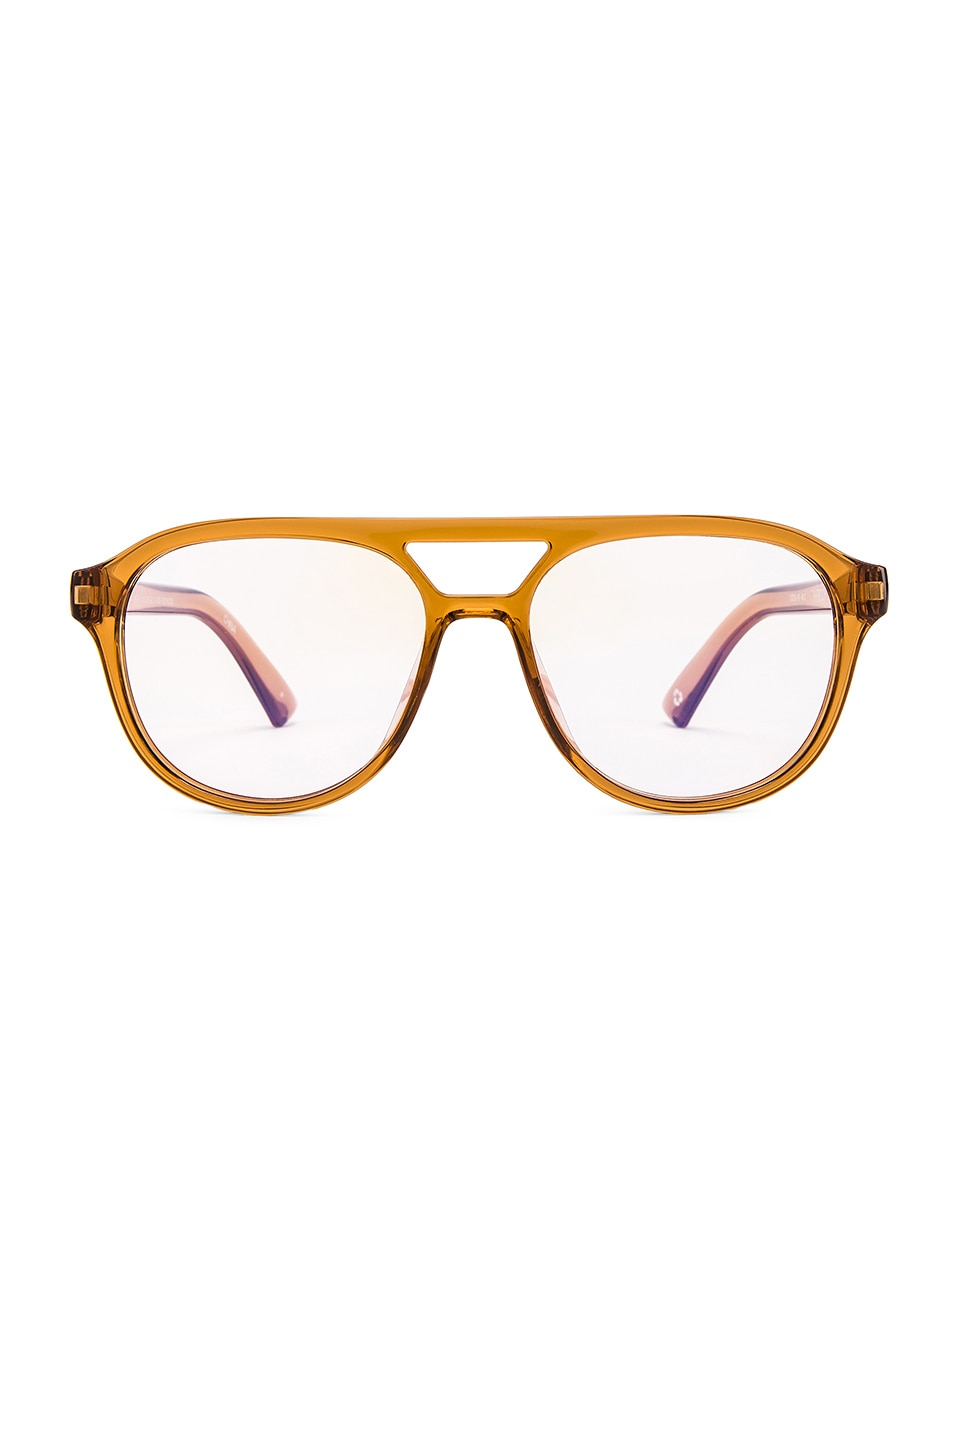 The Book Club GAFAS DE LUZ AZUL DOT A FRECKLE